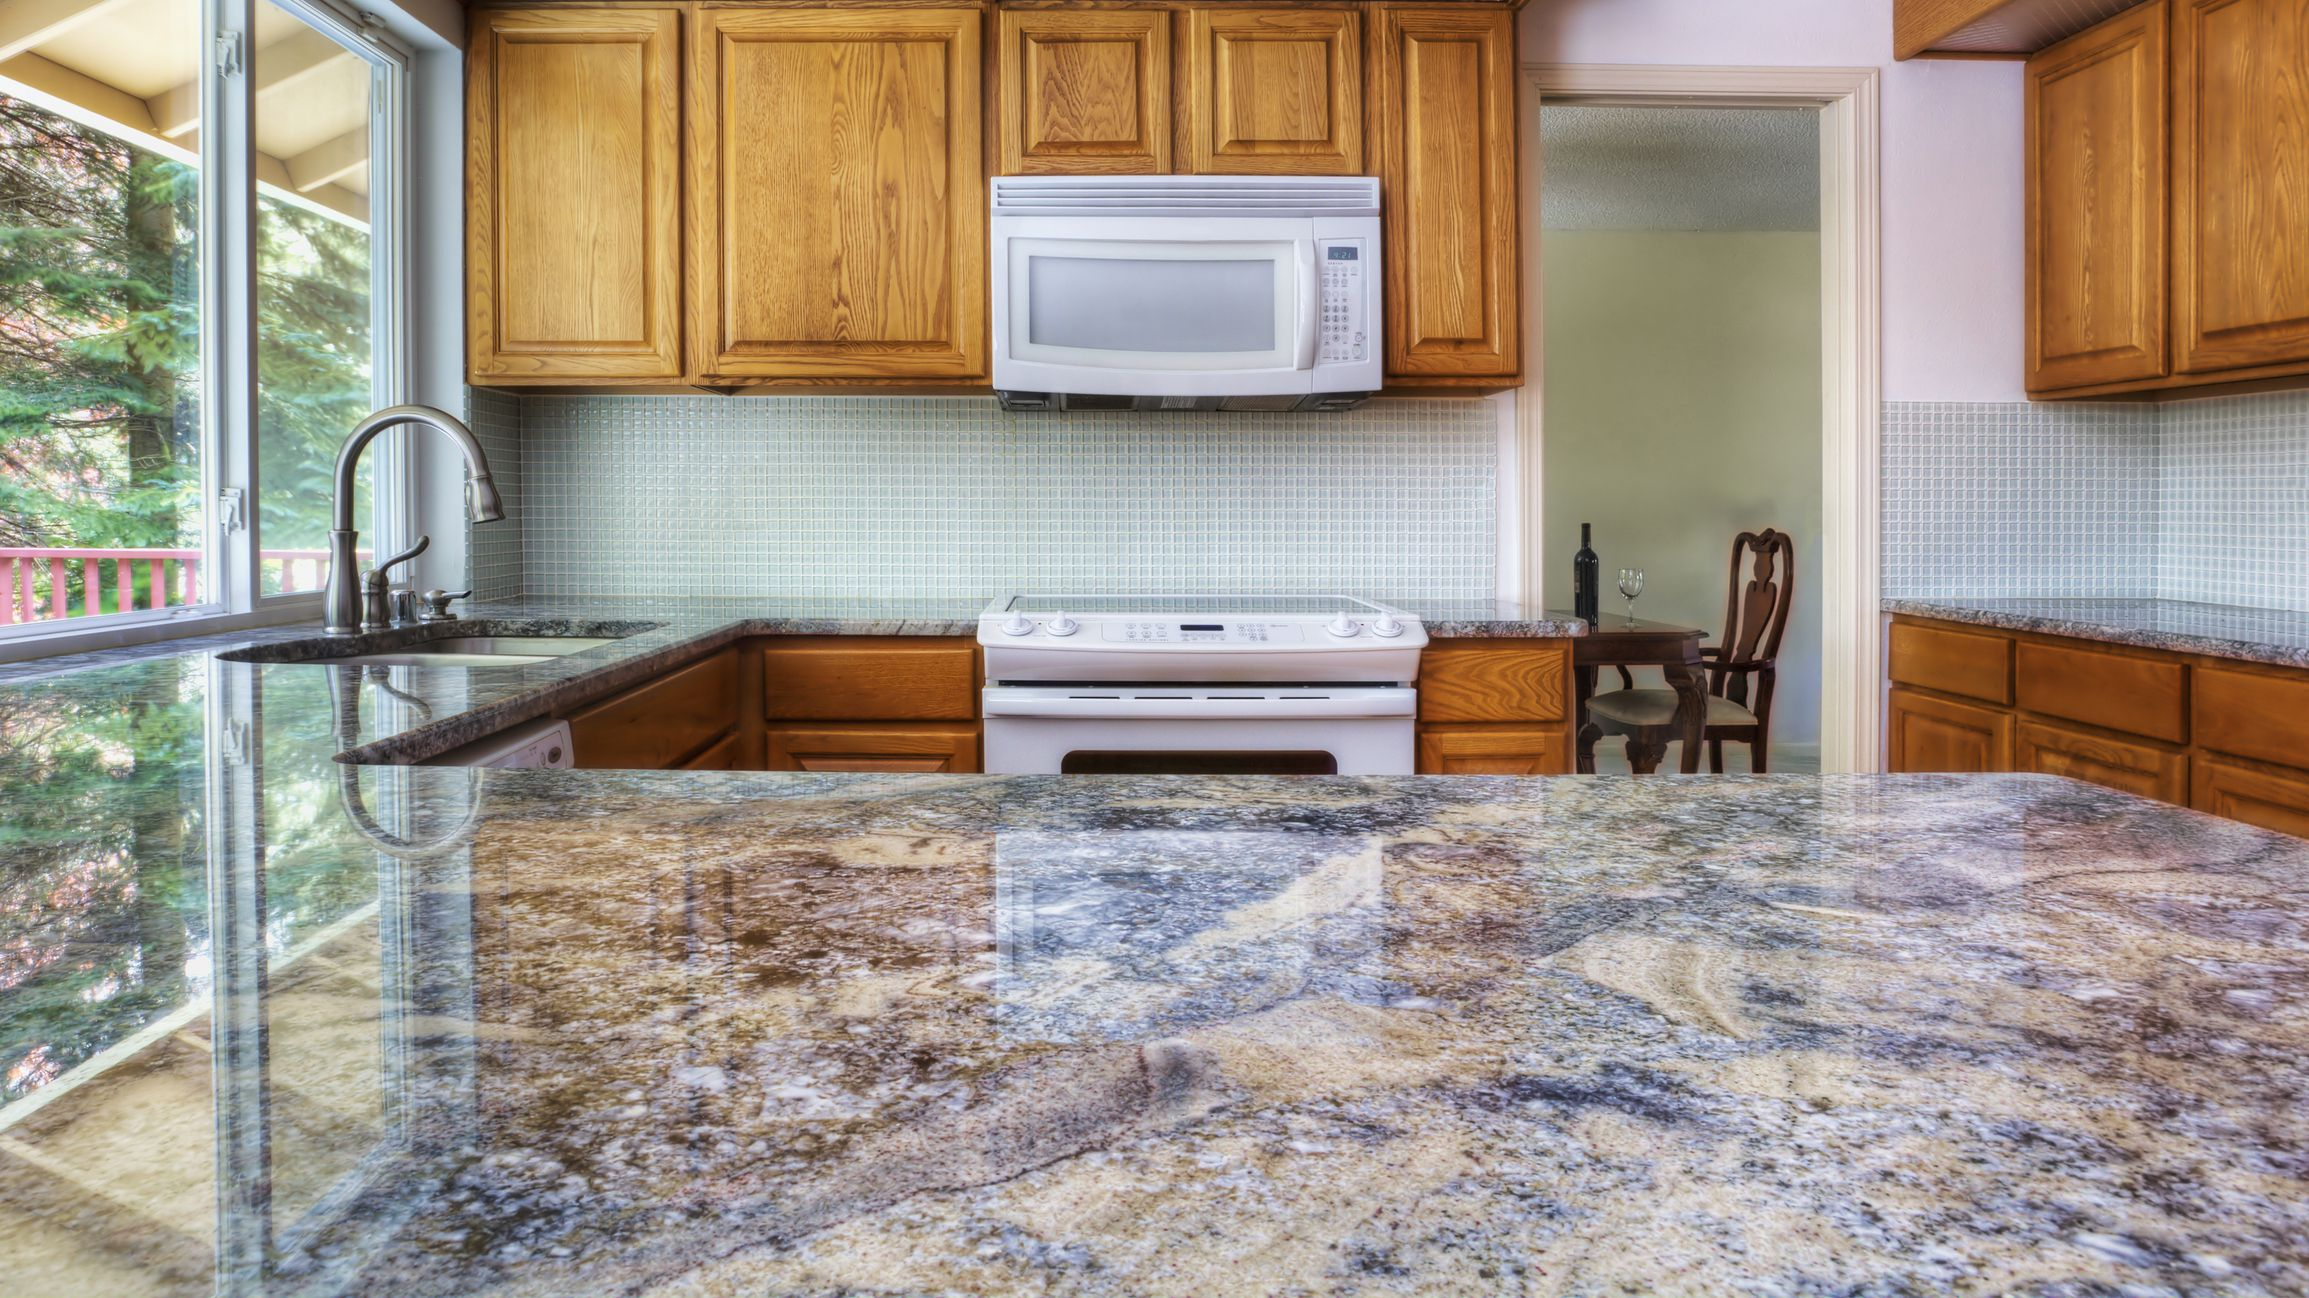 Dont over improve 3 tips to pick the best flooring 5 steps to prepare you for choosing a countertop dailygadgetfo Gallery